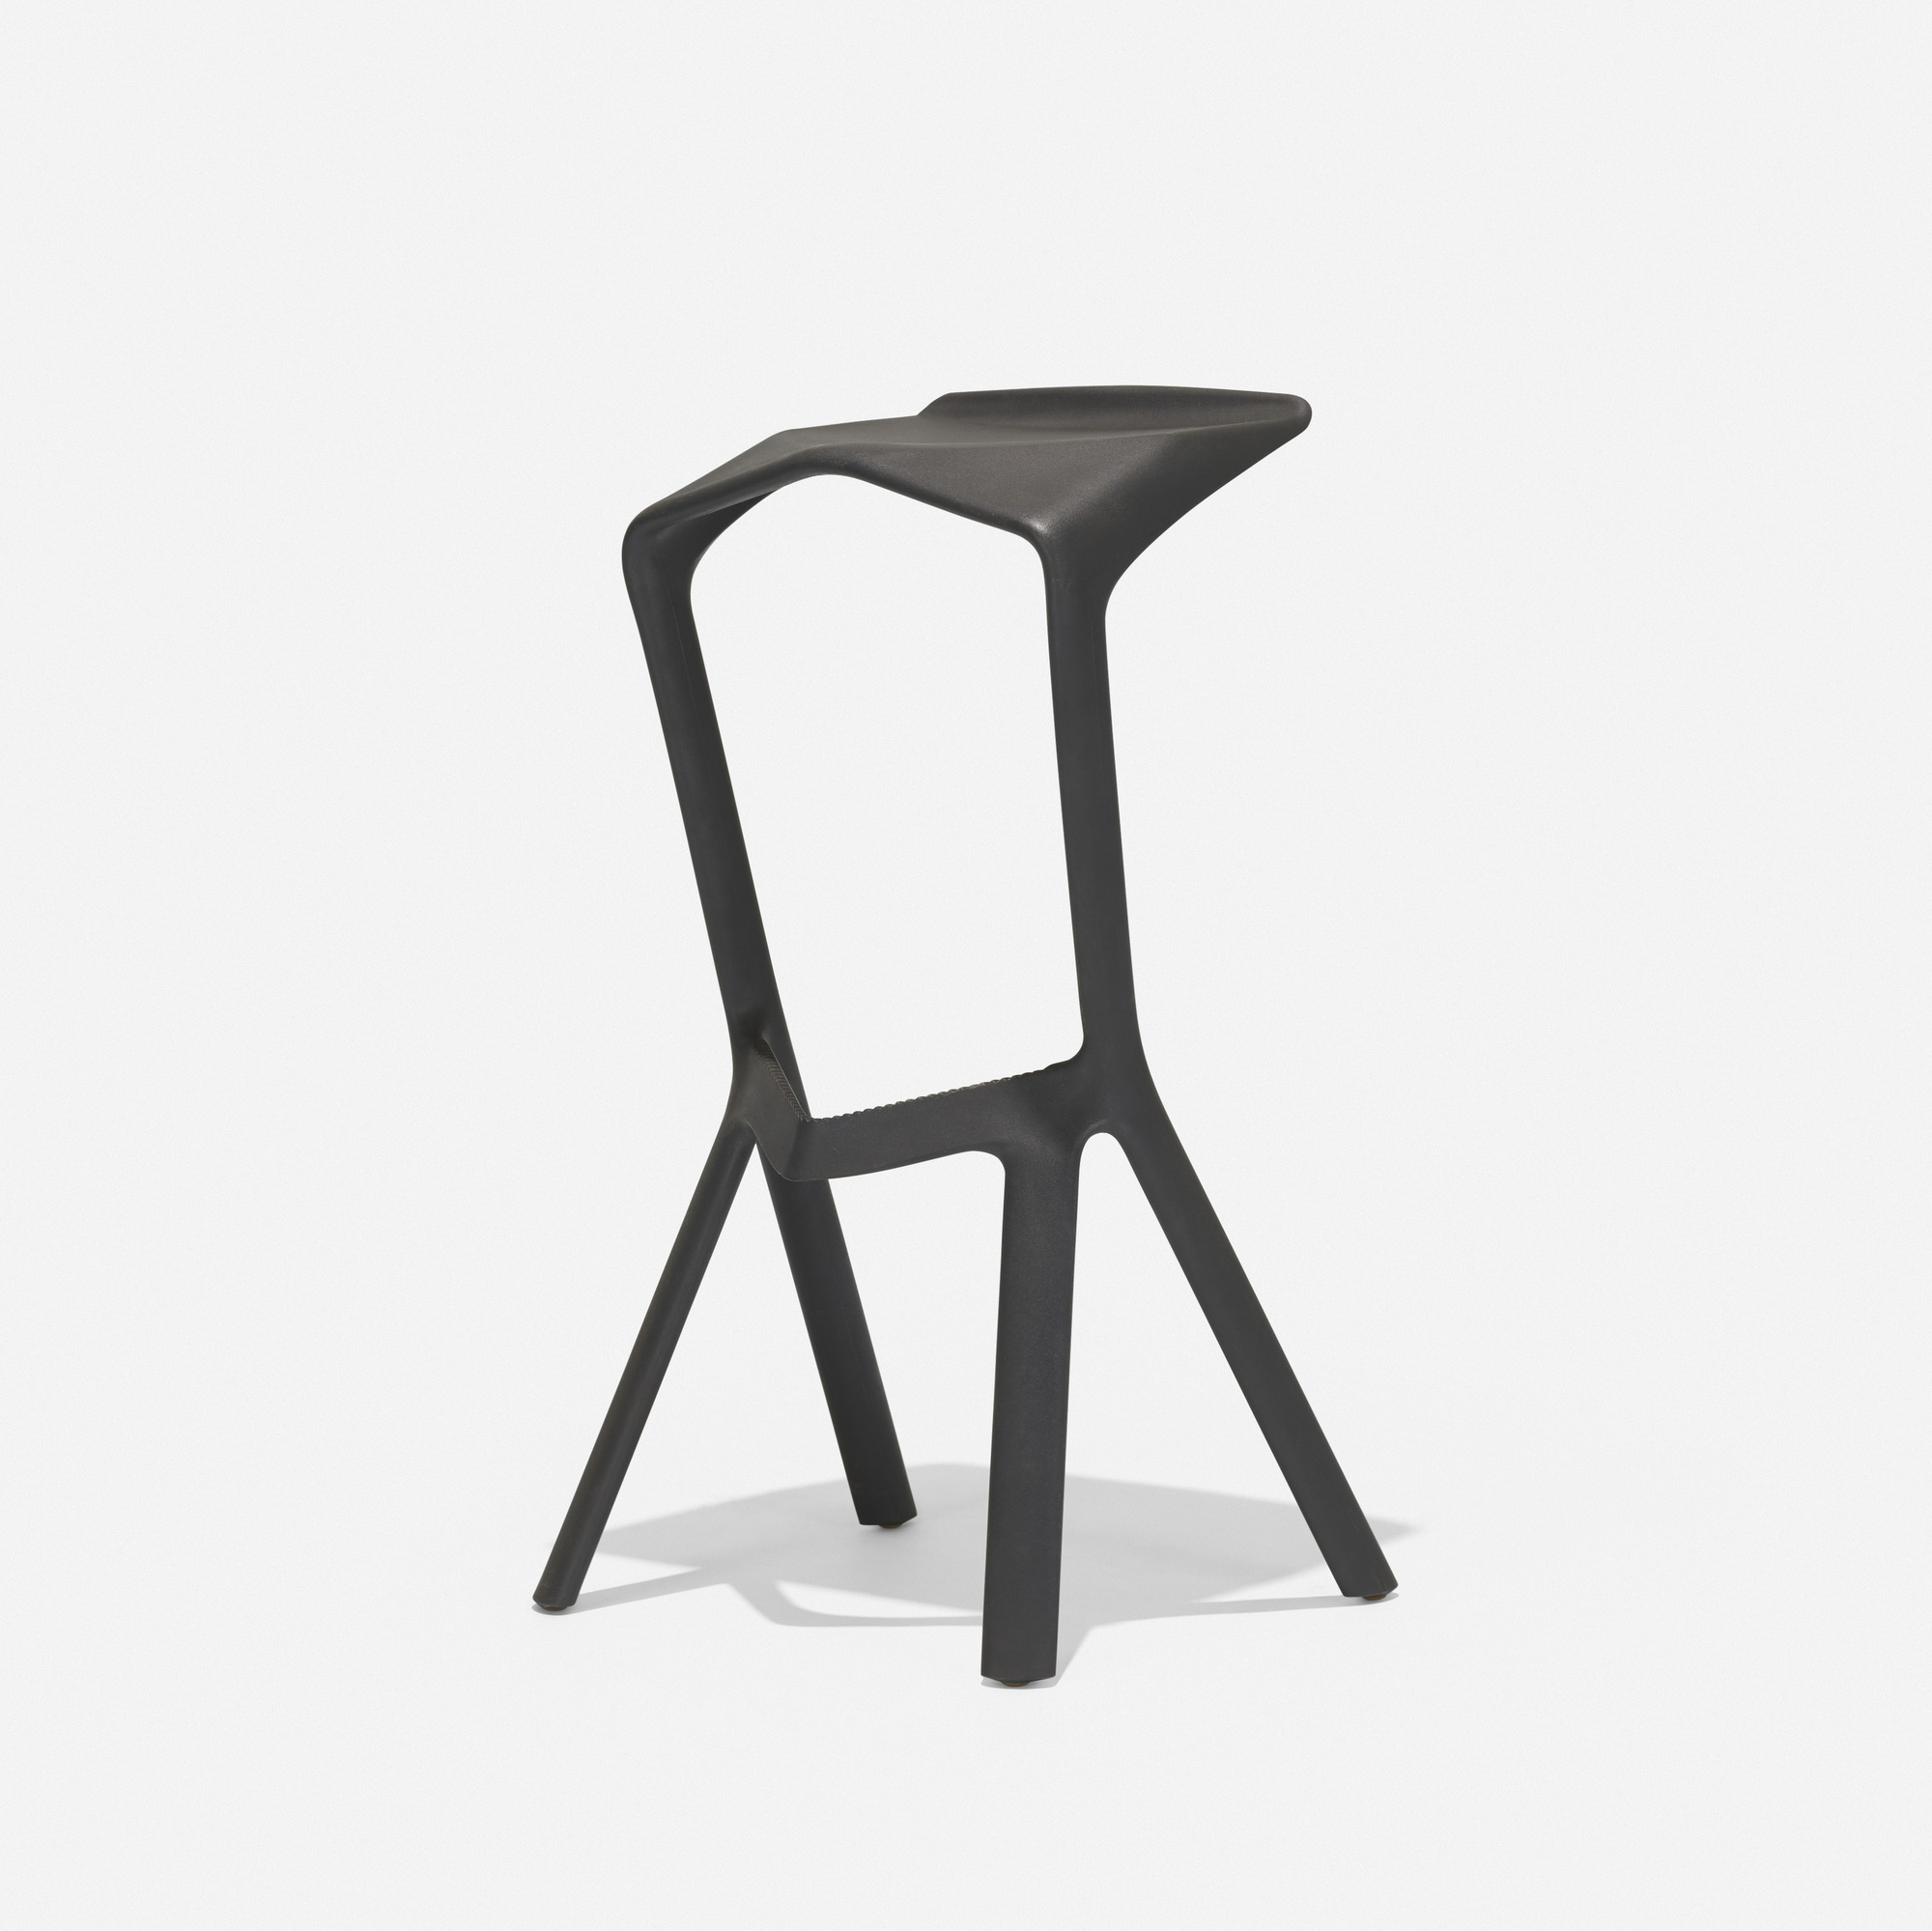 442 konstantin grcic miura stool. Black Bedroom Furniture Sets. Home Design Ideas